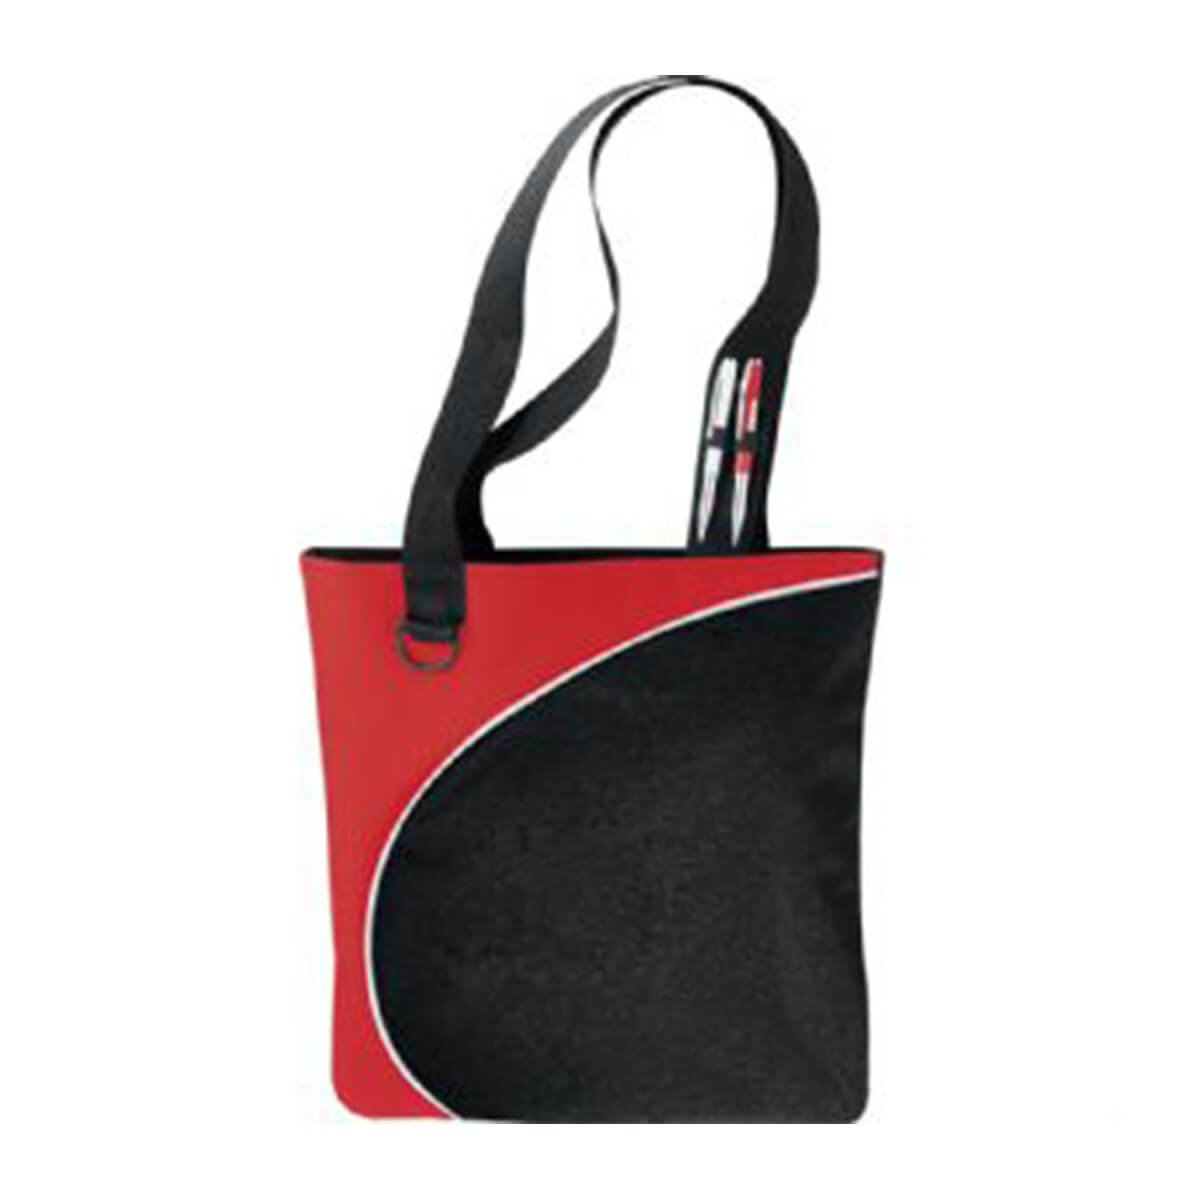 Lunar Convention Tote-Black and Red with White Trim.